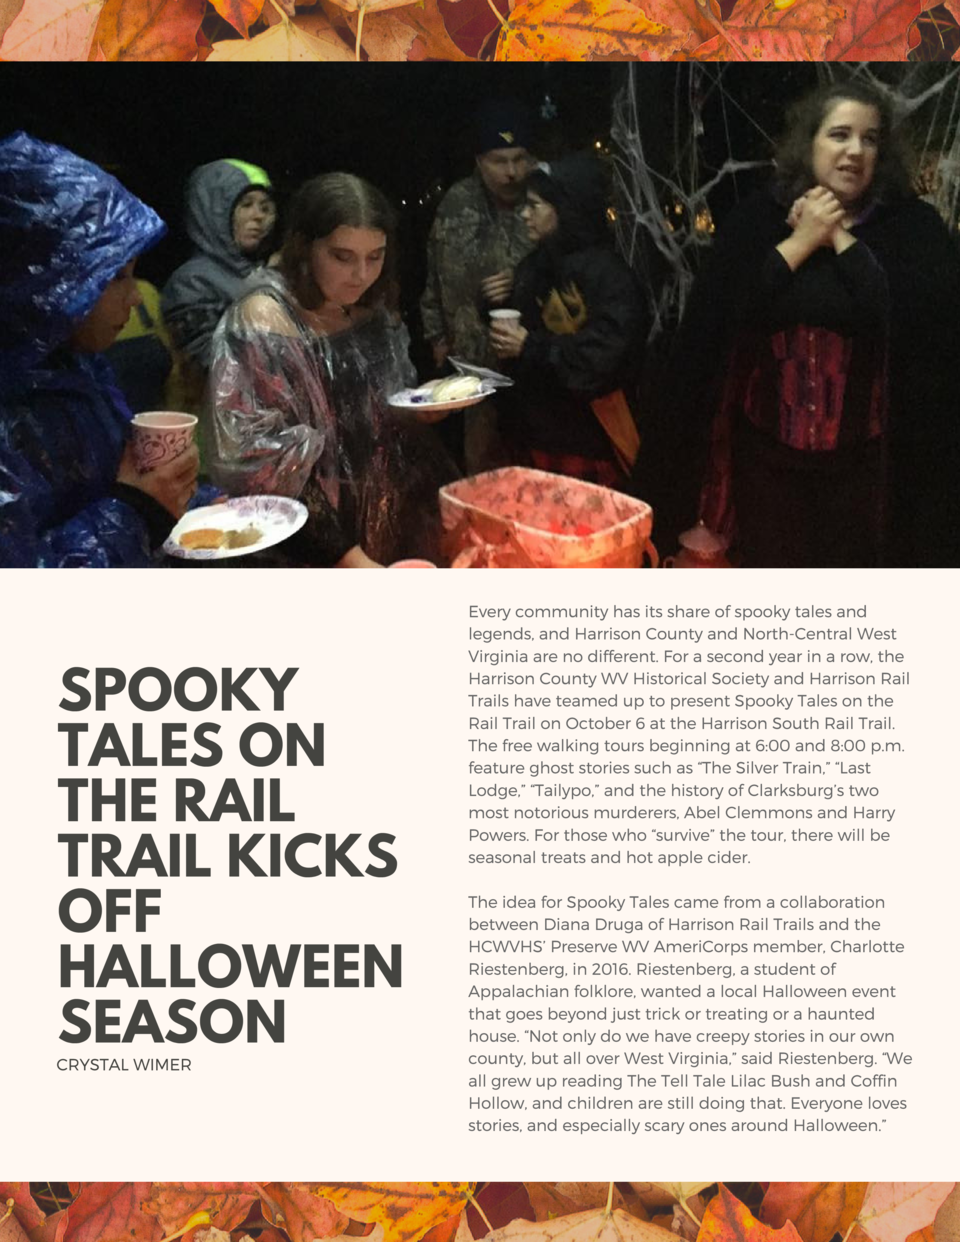 SPOOKY TALES ON THE RAIL TRAIL KICKS OFF HALLOWEEN SEASON  CRYSTAL WIMER  Every community has its share of spooky tales an...